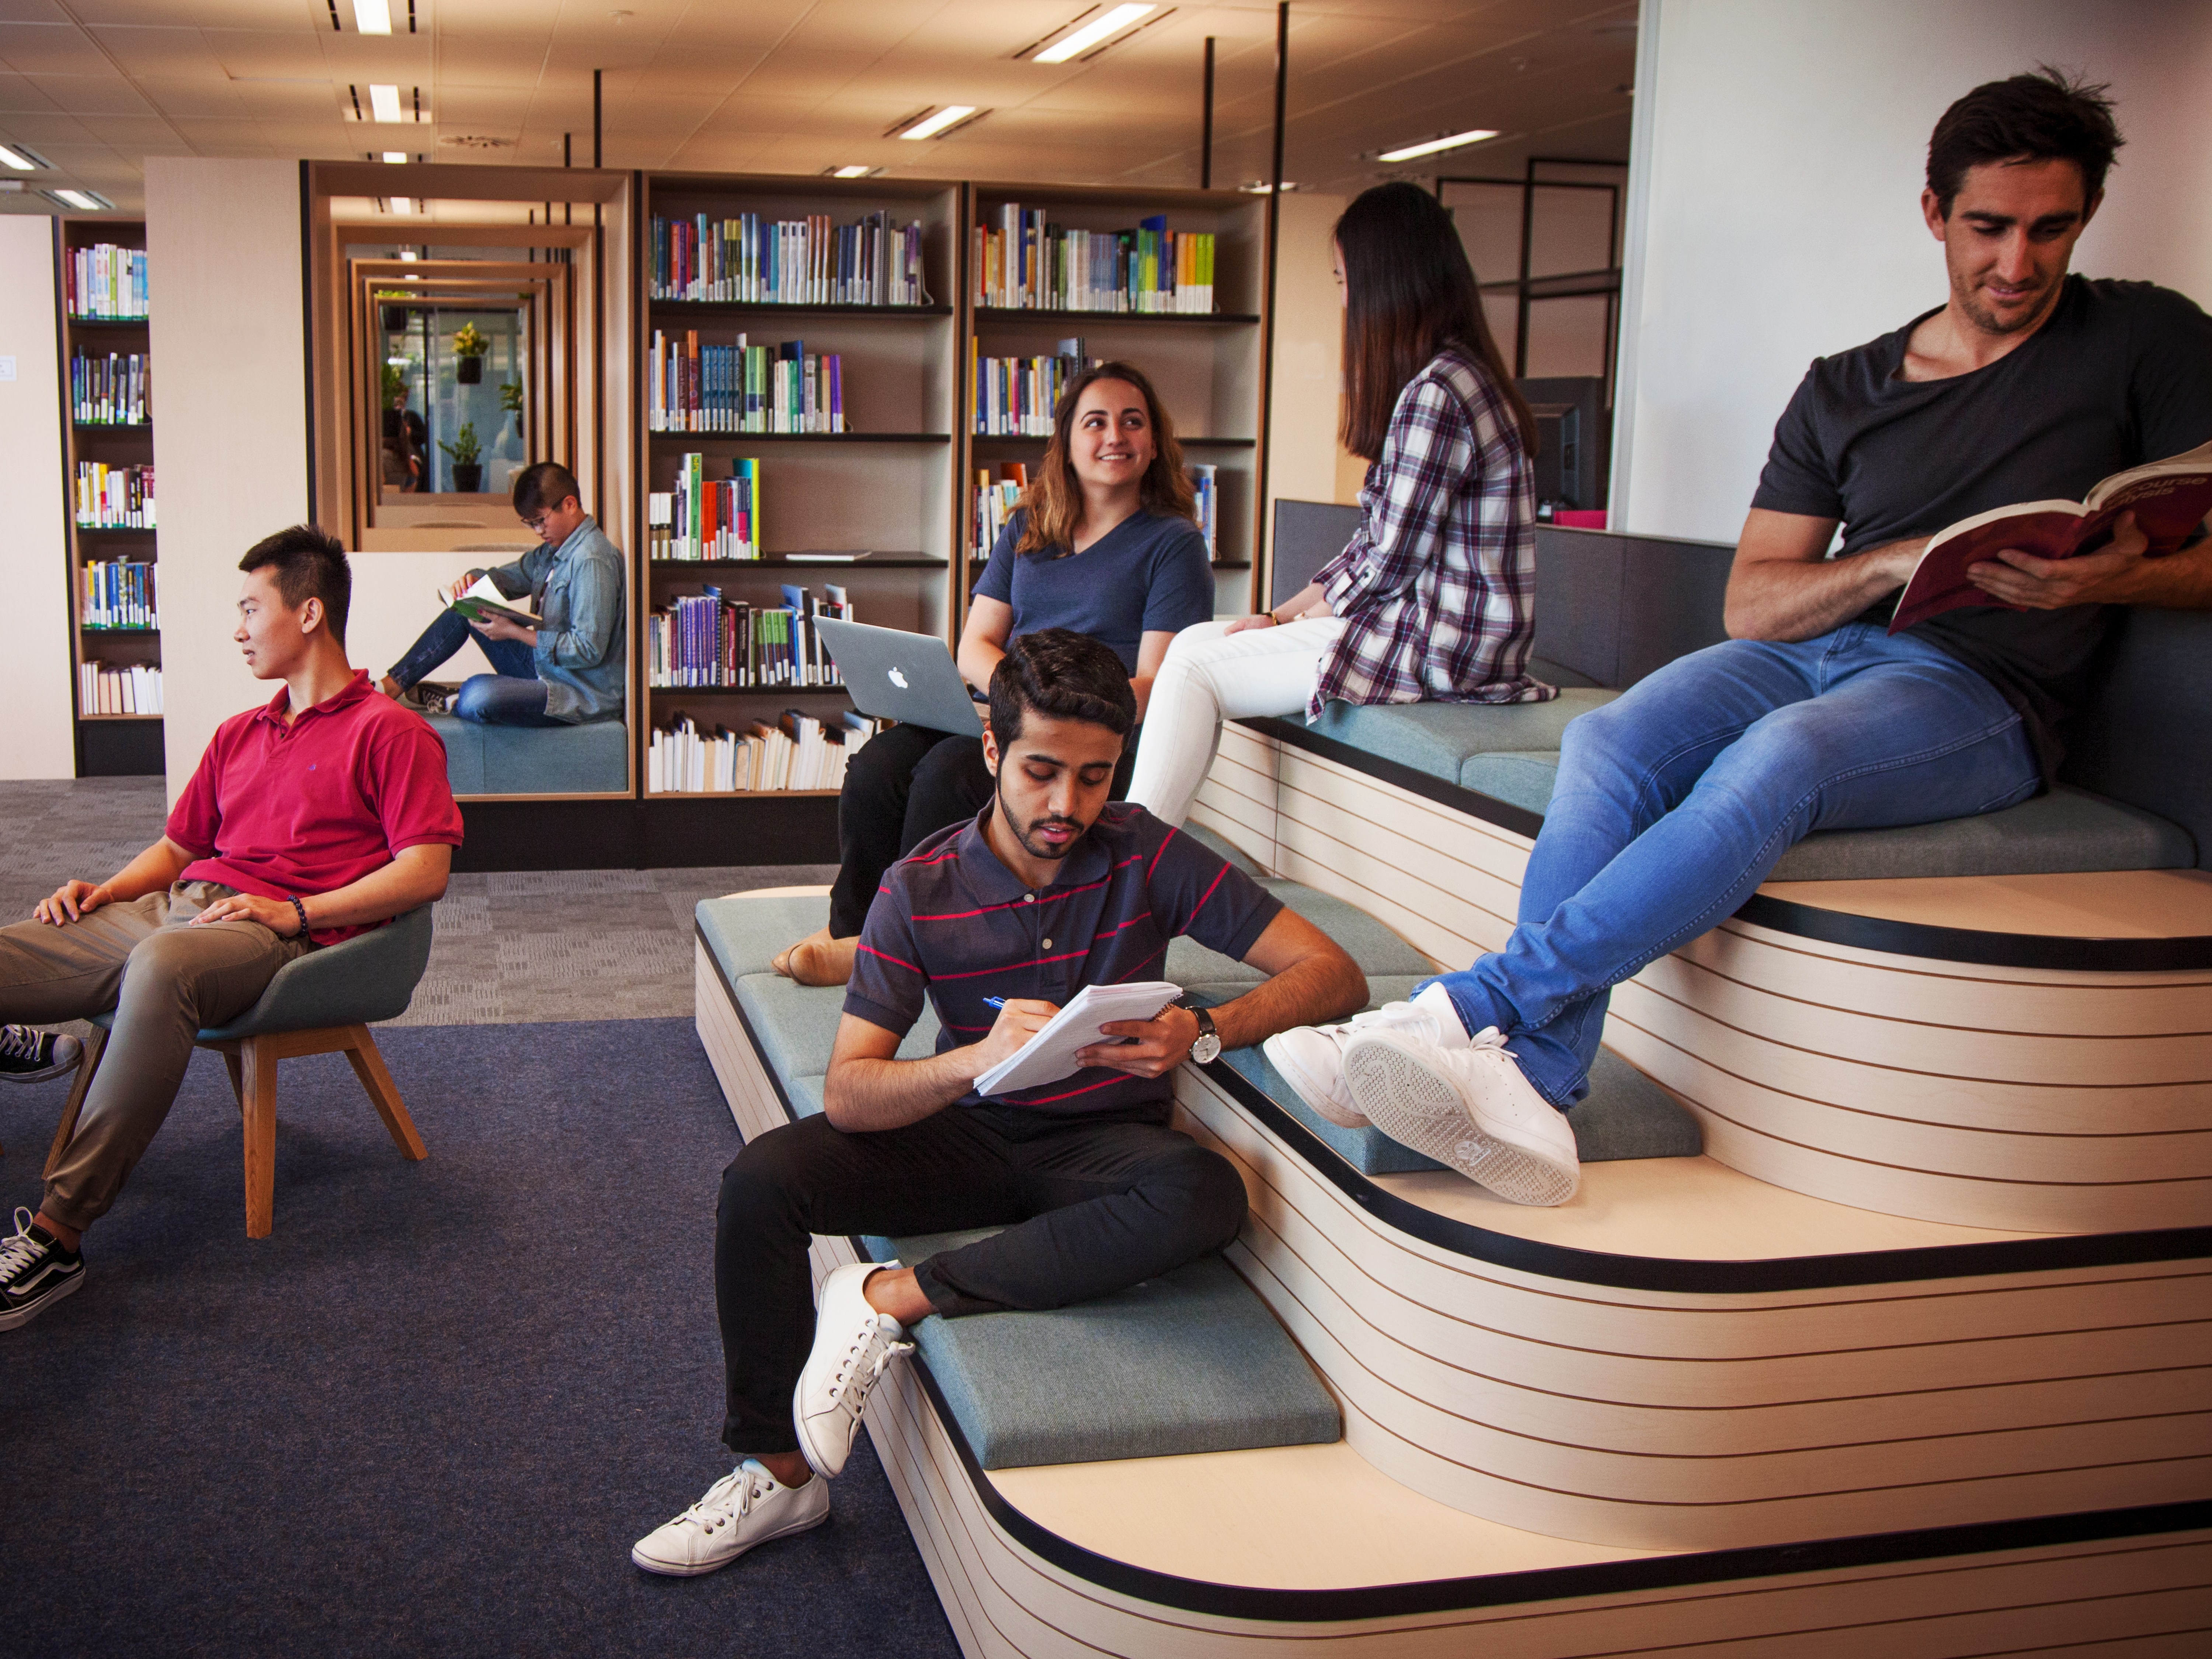 Our Sydney campus library provides quality resources and services to support teaching and learning.